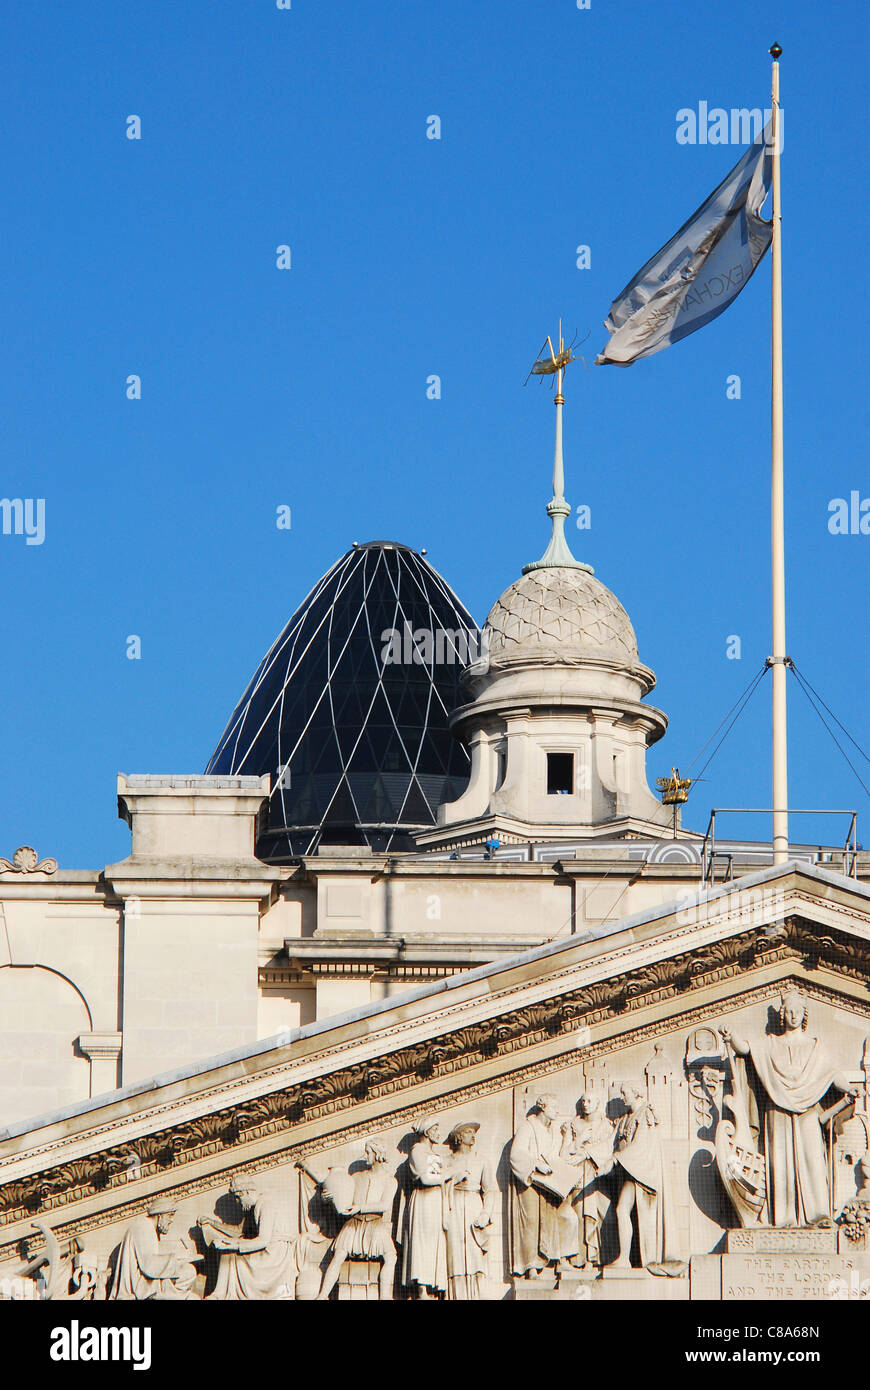 Skyline view in the City of London financial center showing the tympanum of the Royal Exchange and the 'Gherkin' - Stock Image